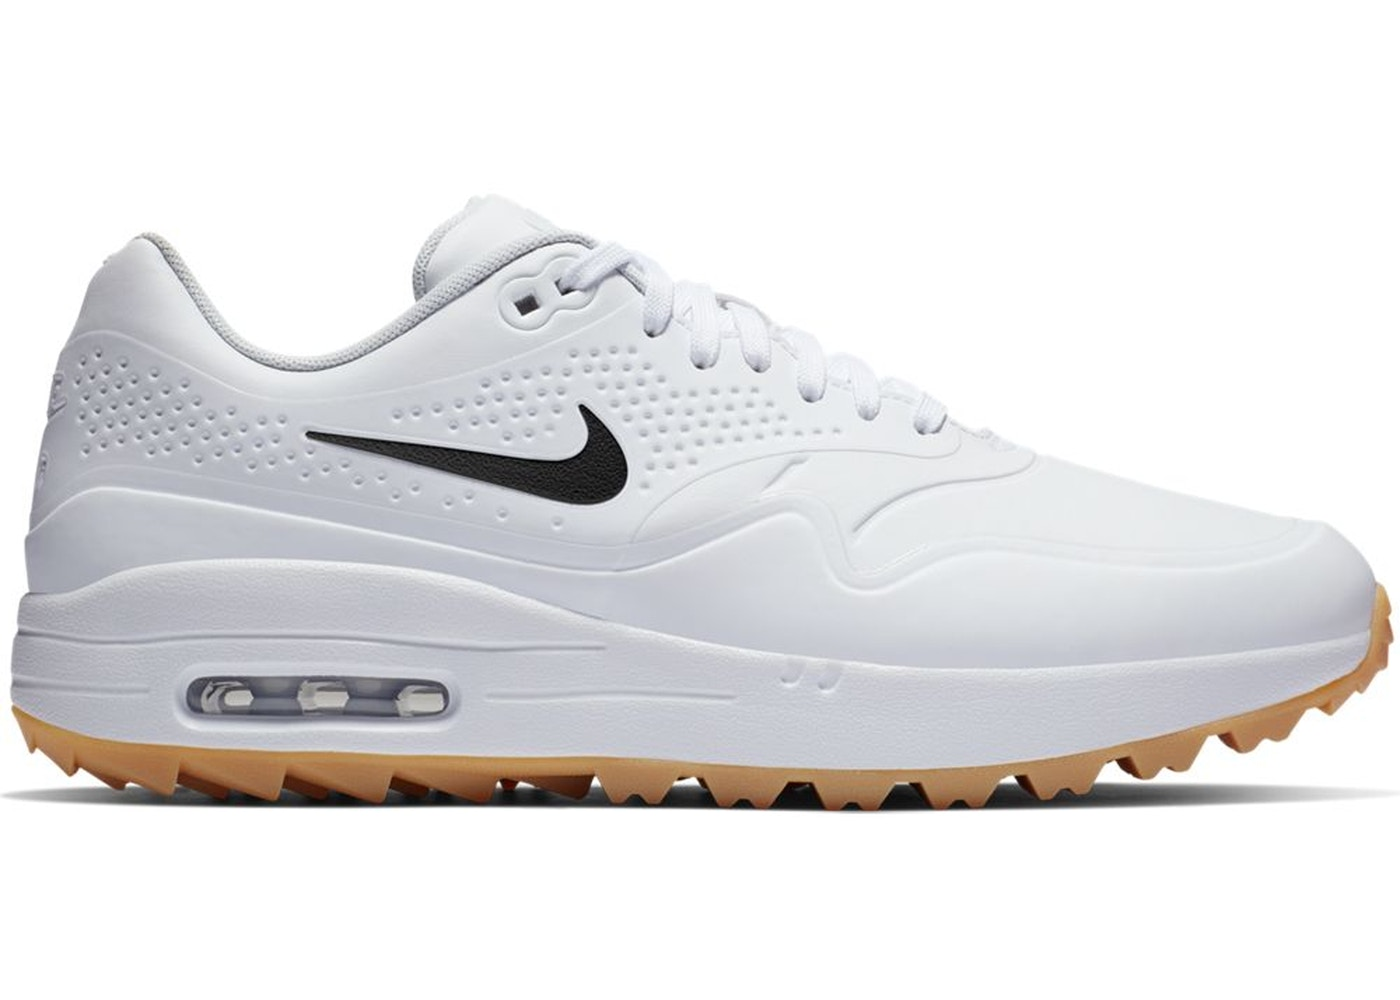 Nike Air Max 1 Golf White Gum Black Swoosh